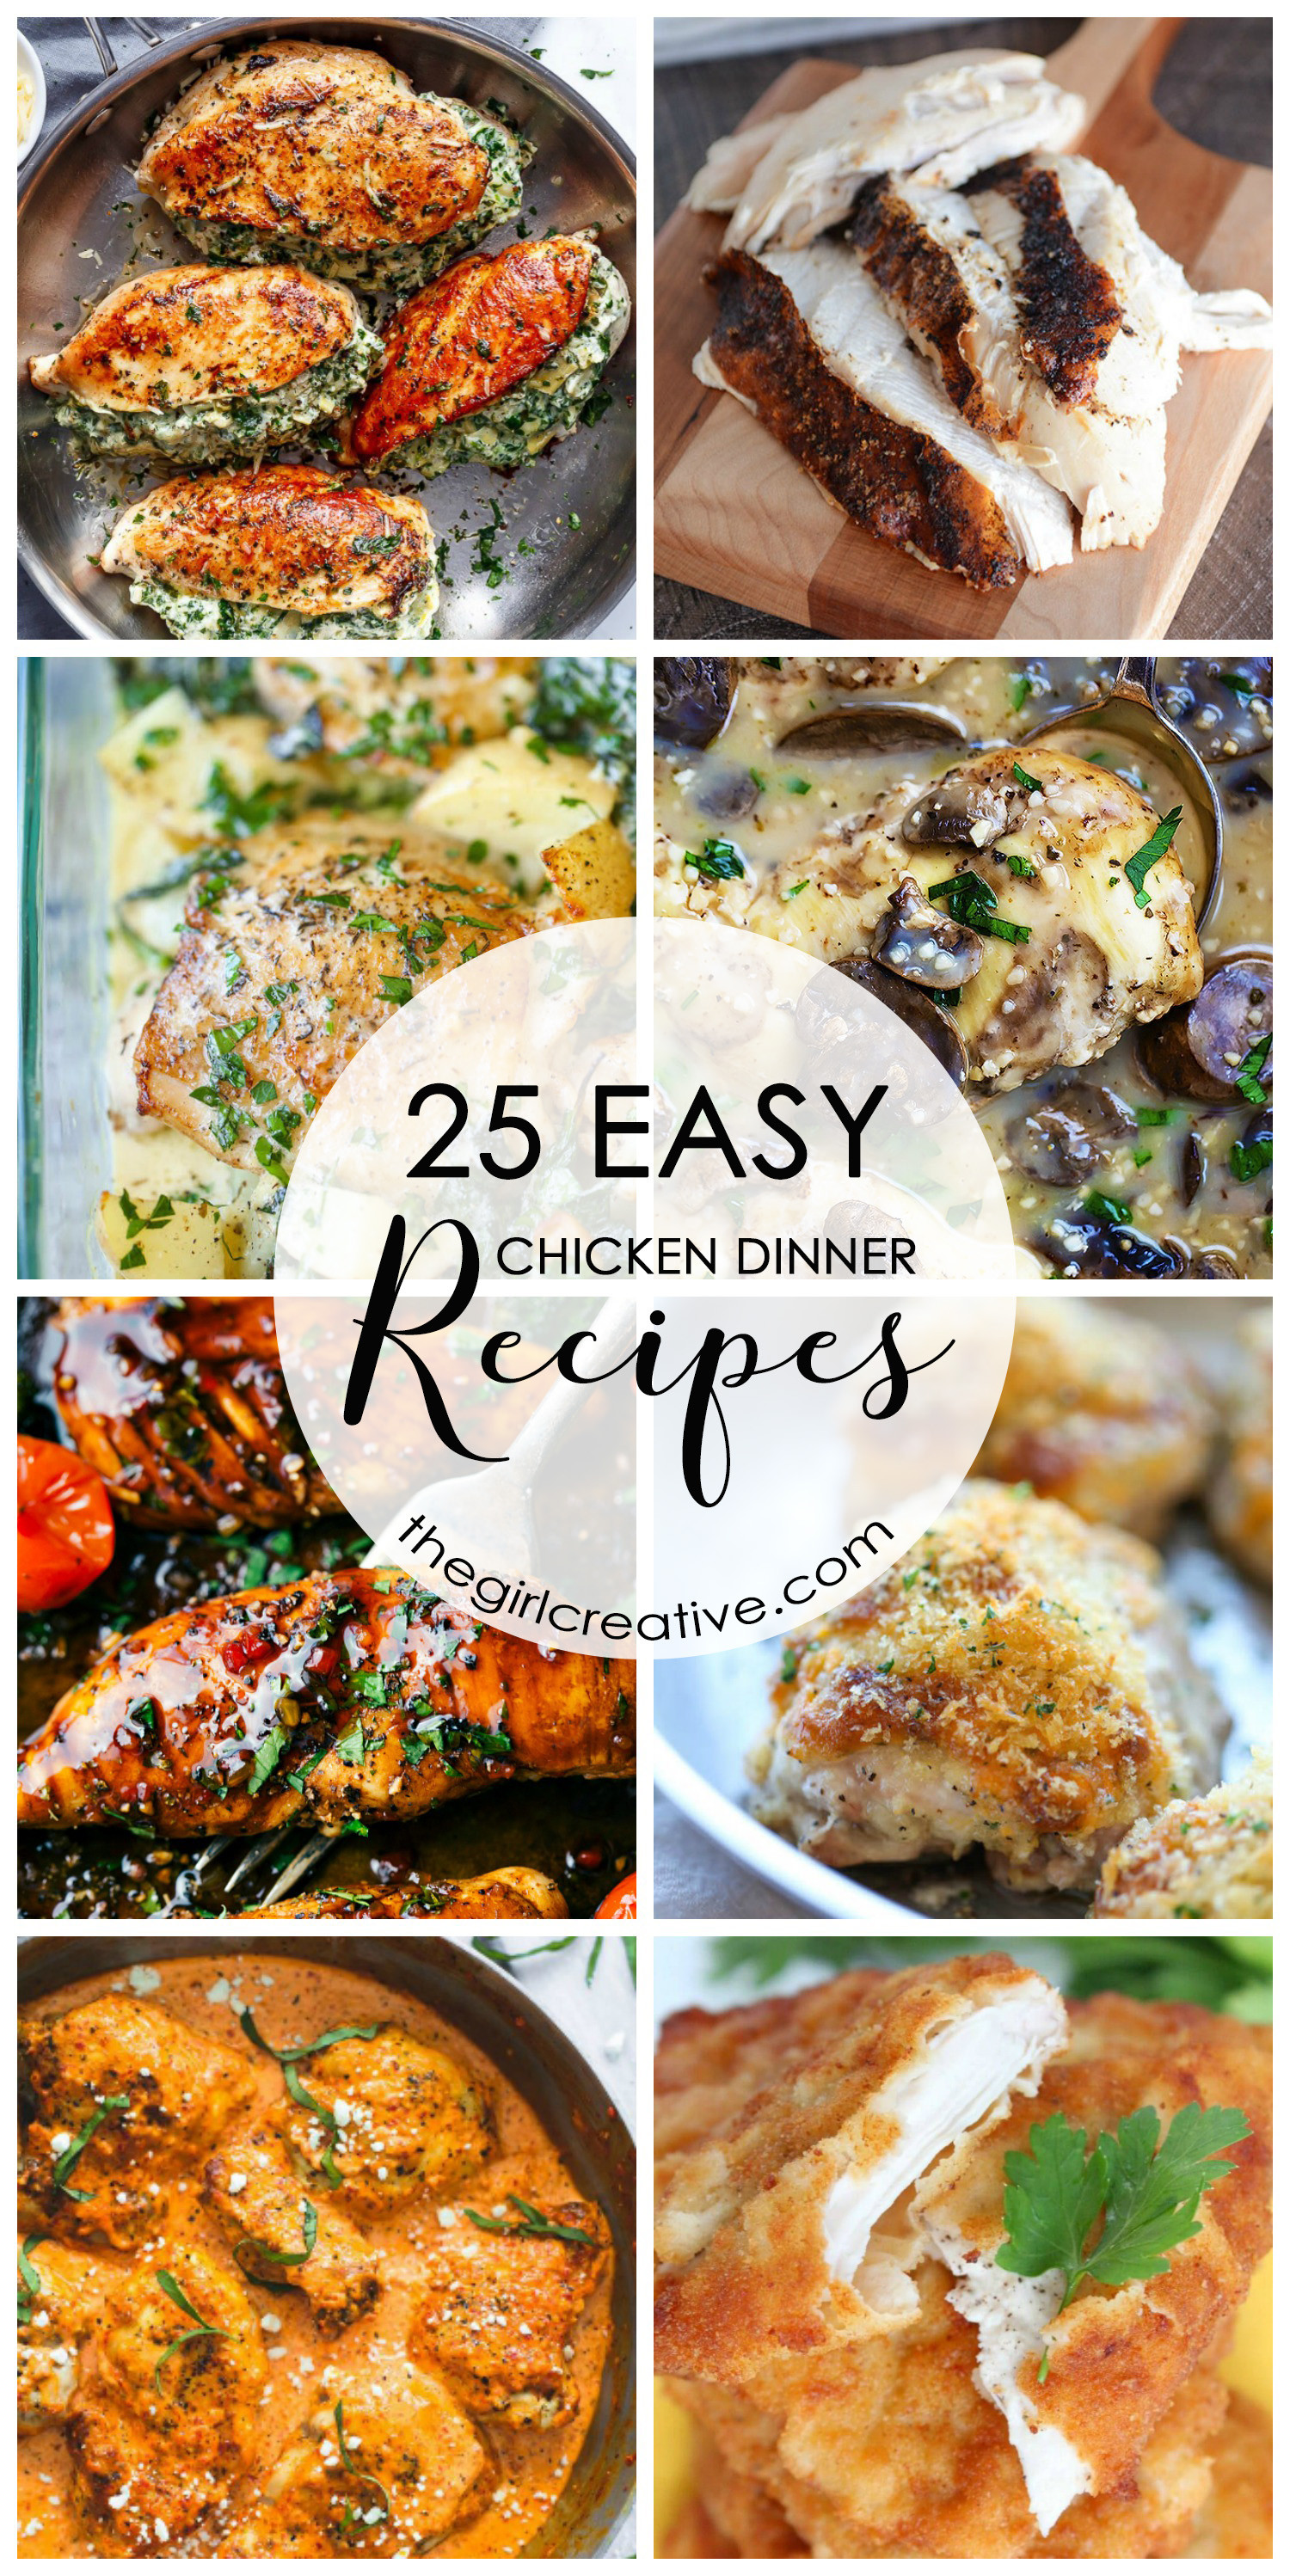 Quick Chicken Dinners  25 Easy Chicken Dinner Recipes The Girl Creative